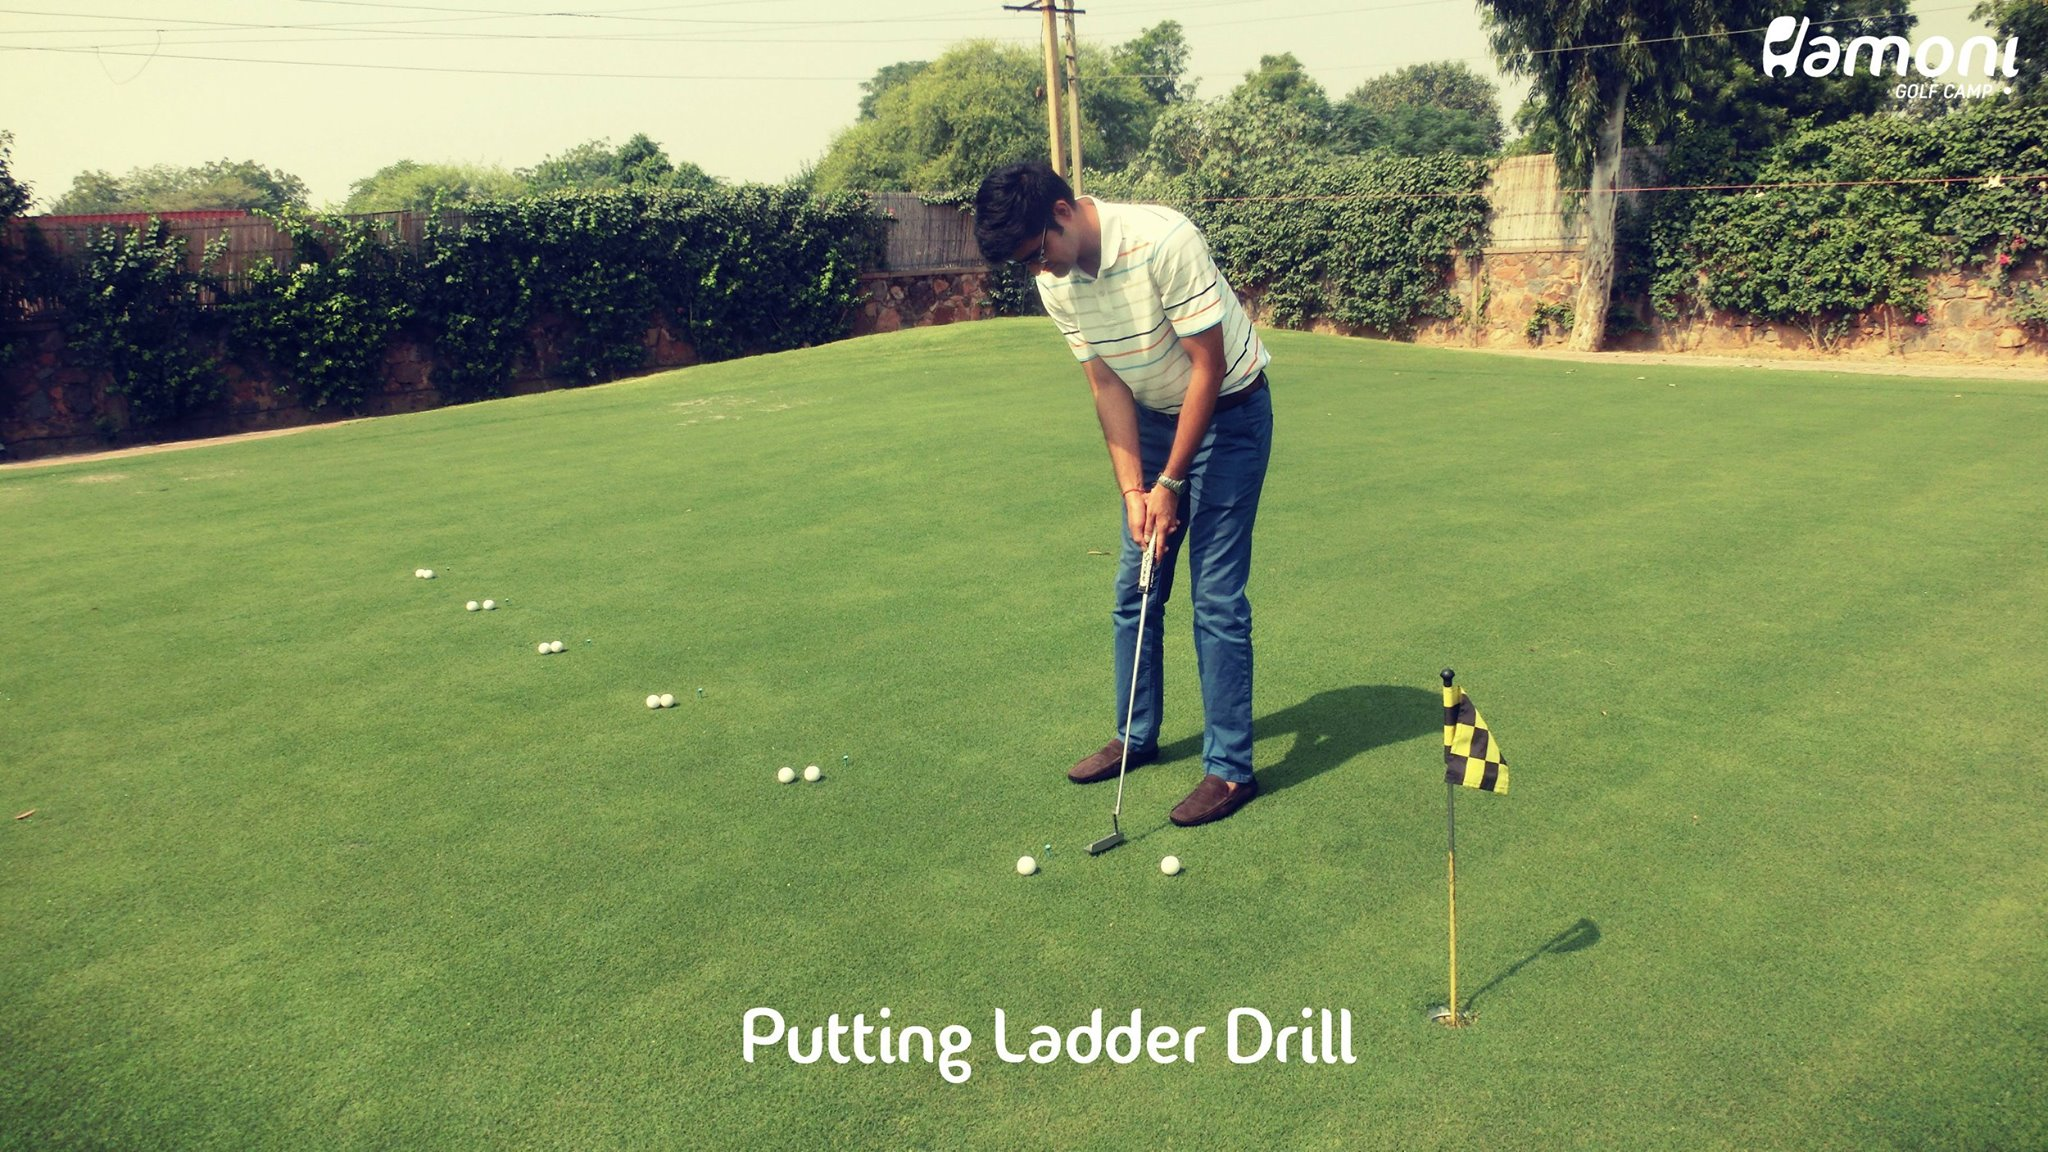 Taking your putting to the next level